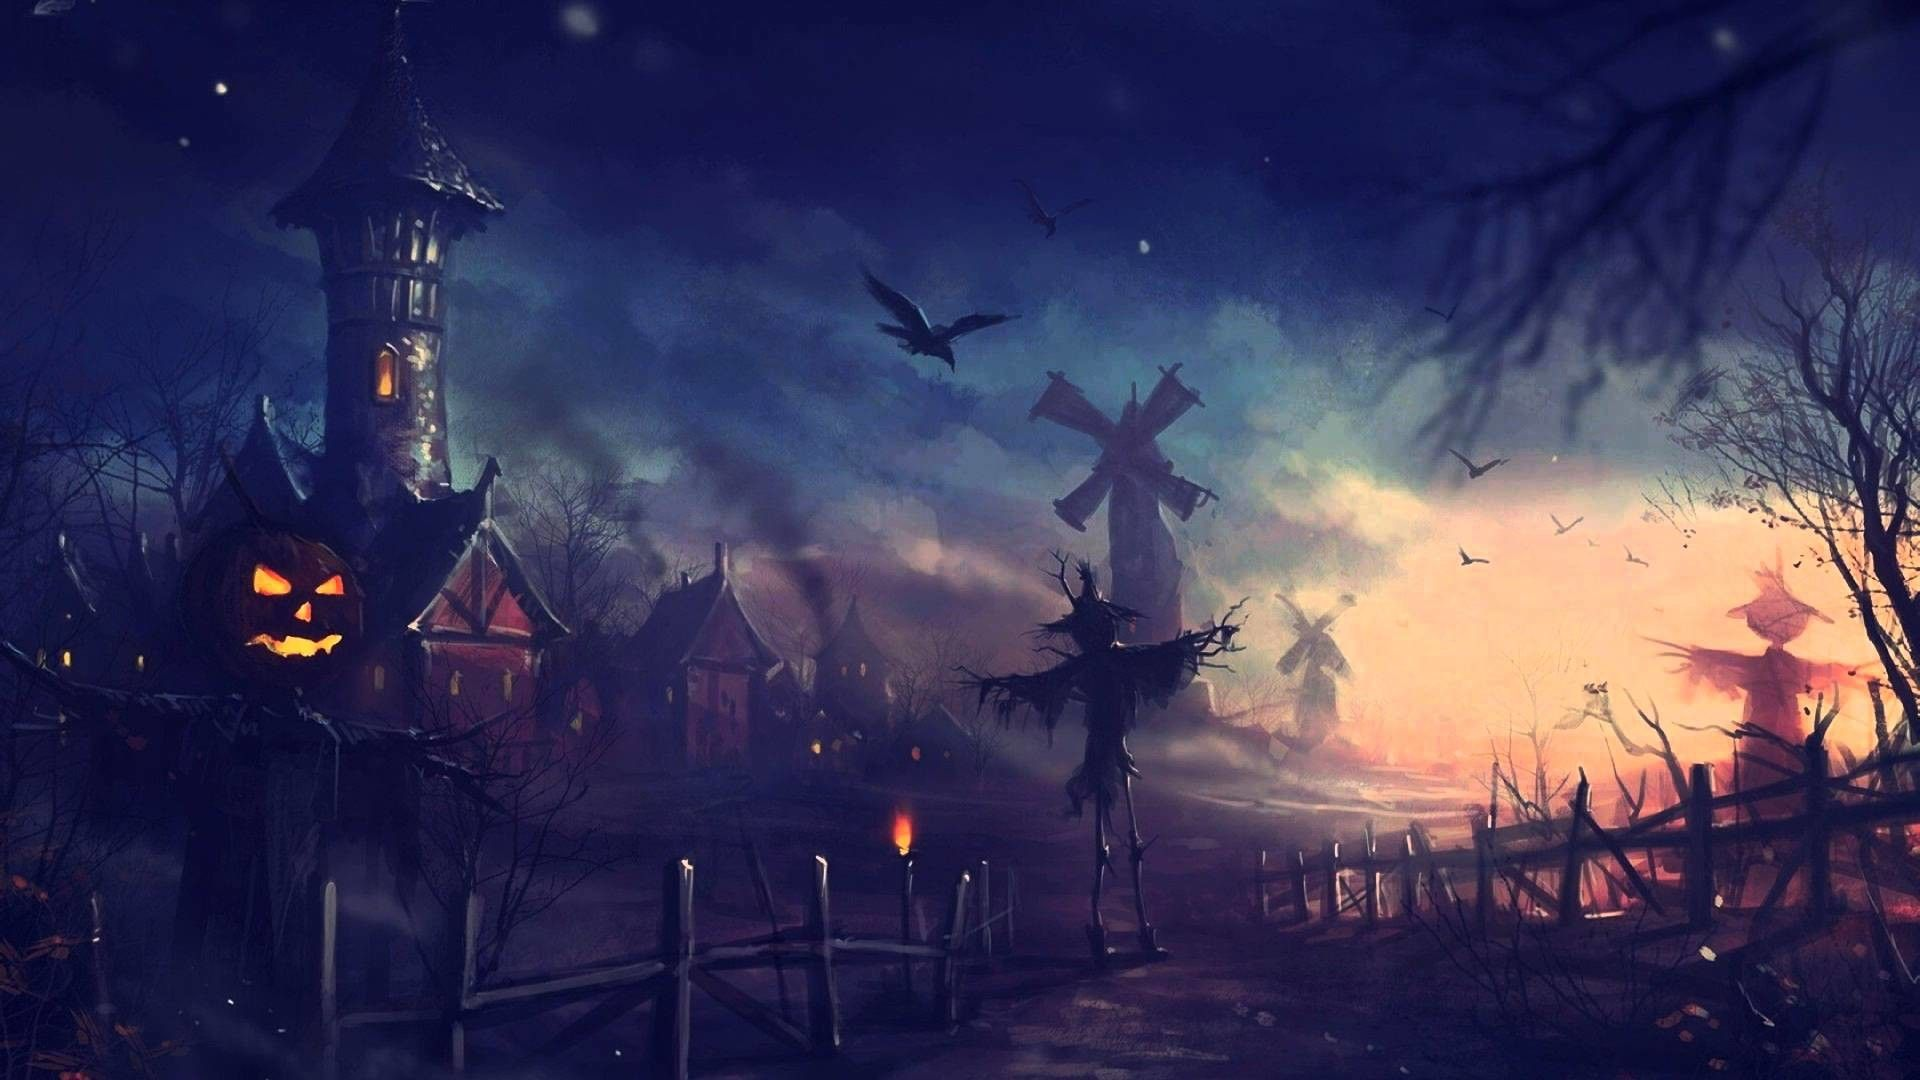 Spooky Halloween Night 1920x1080 Halloween Wallpaper Backgrounds Halloween Prints Halloween Backgrounds